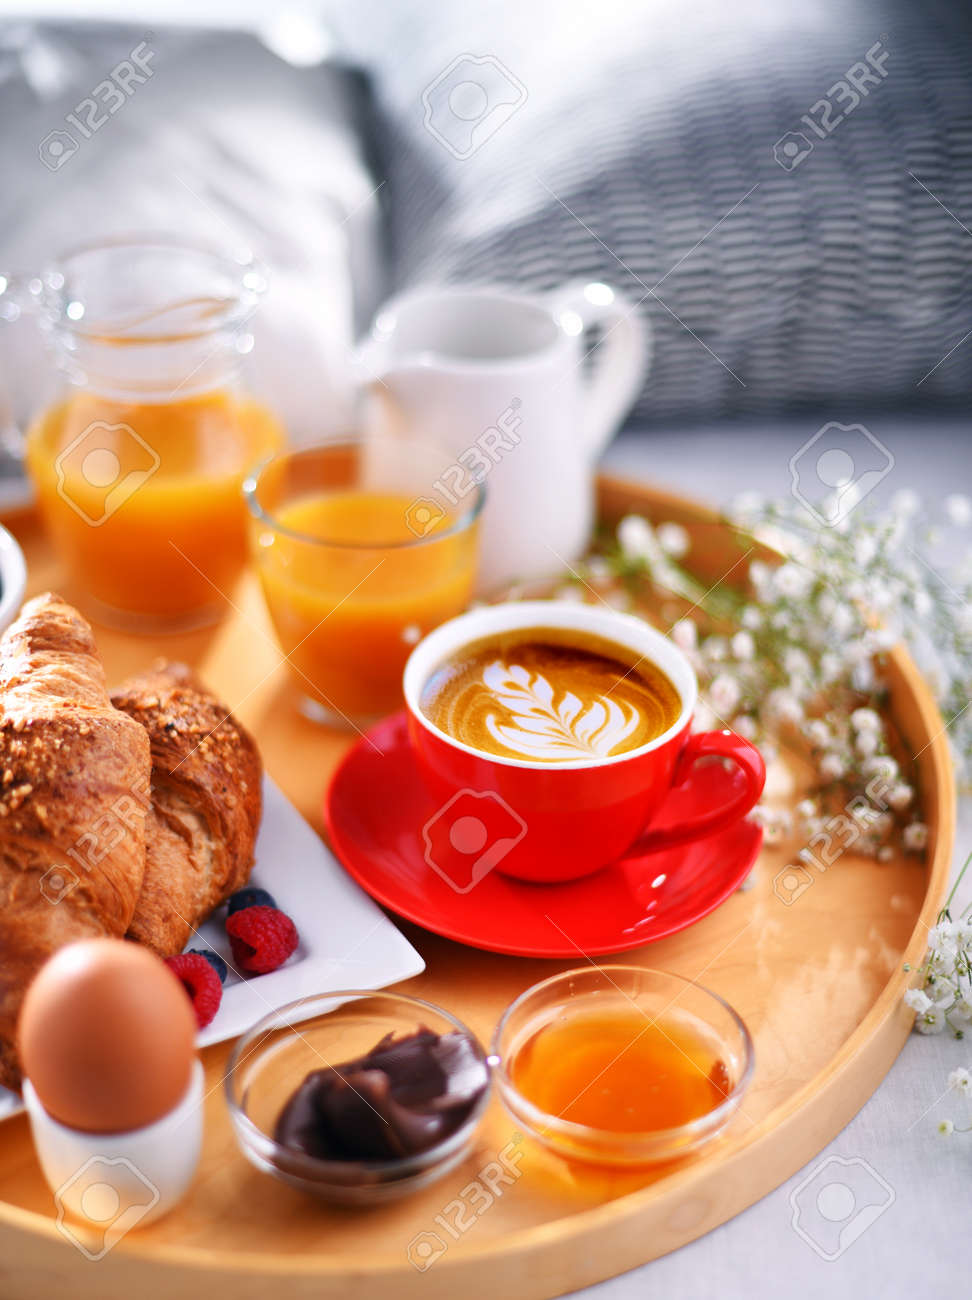 A tray with breakfast on a bed in a hotel room. - 169105200